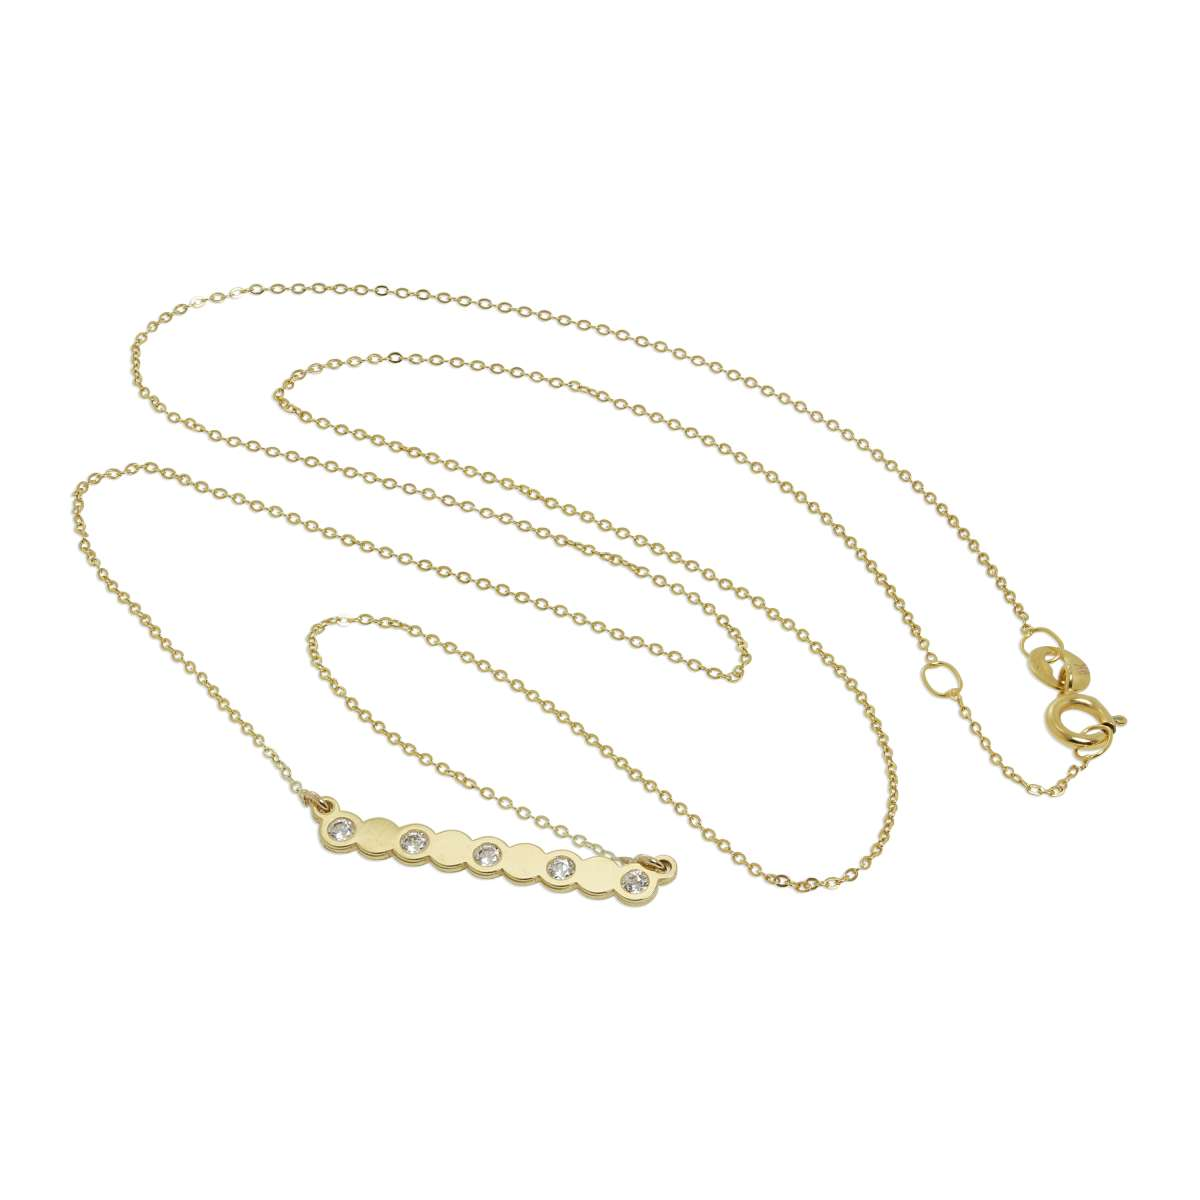 Alterative image for 9ct Gold & Clear CZ Crystal Circles Fine 1mm Curb Necklace 16 Inches